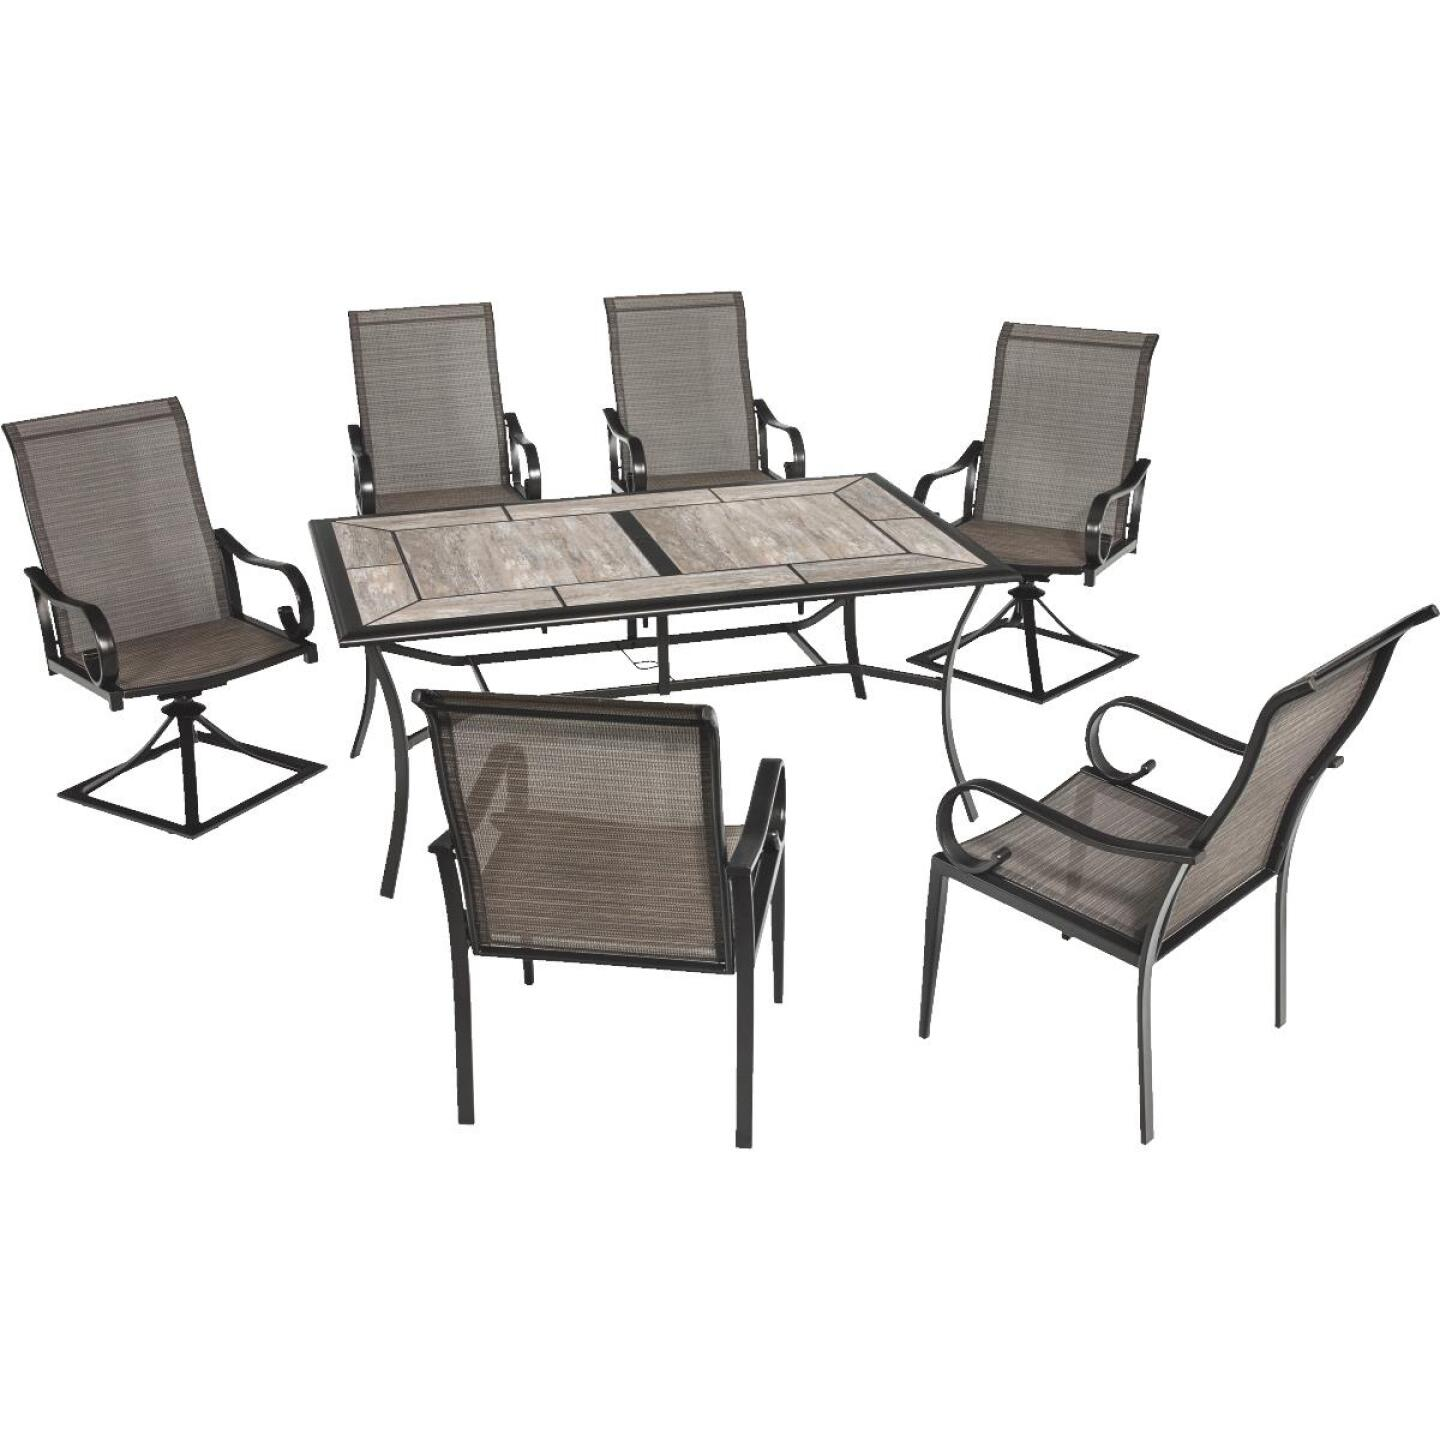 Outdoor Expressions Berkshire 7-Piece Dining Set Image 272